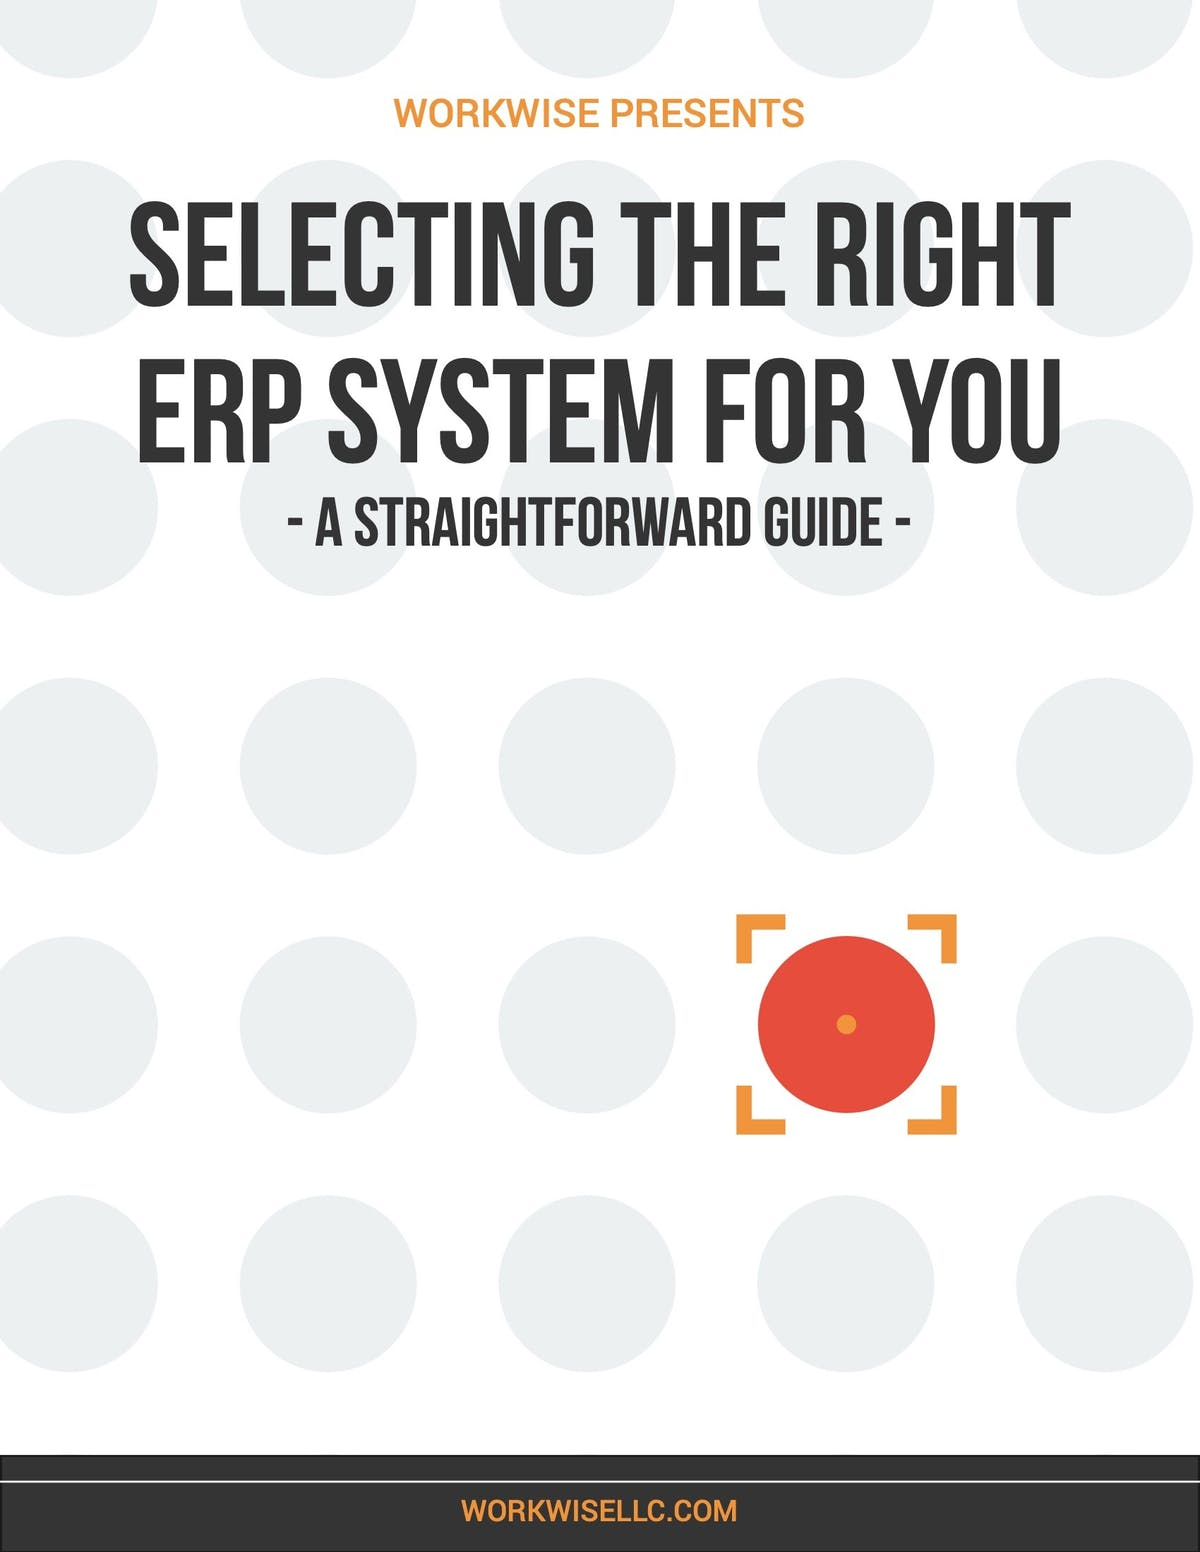 WorkWise ERP White Paper - Selecting the Right ERP System for You